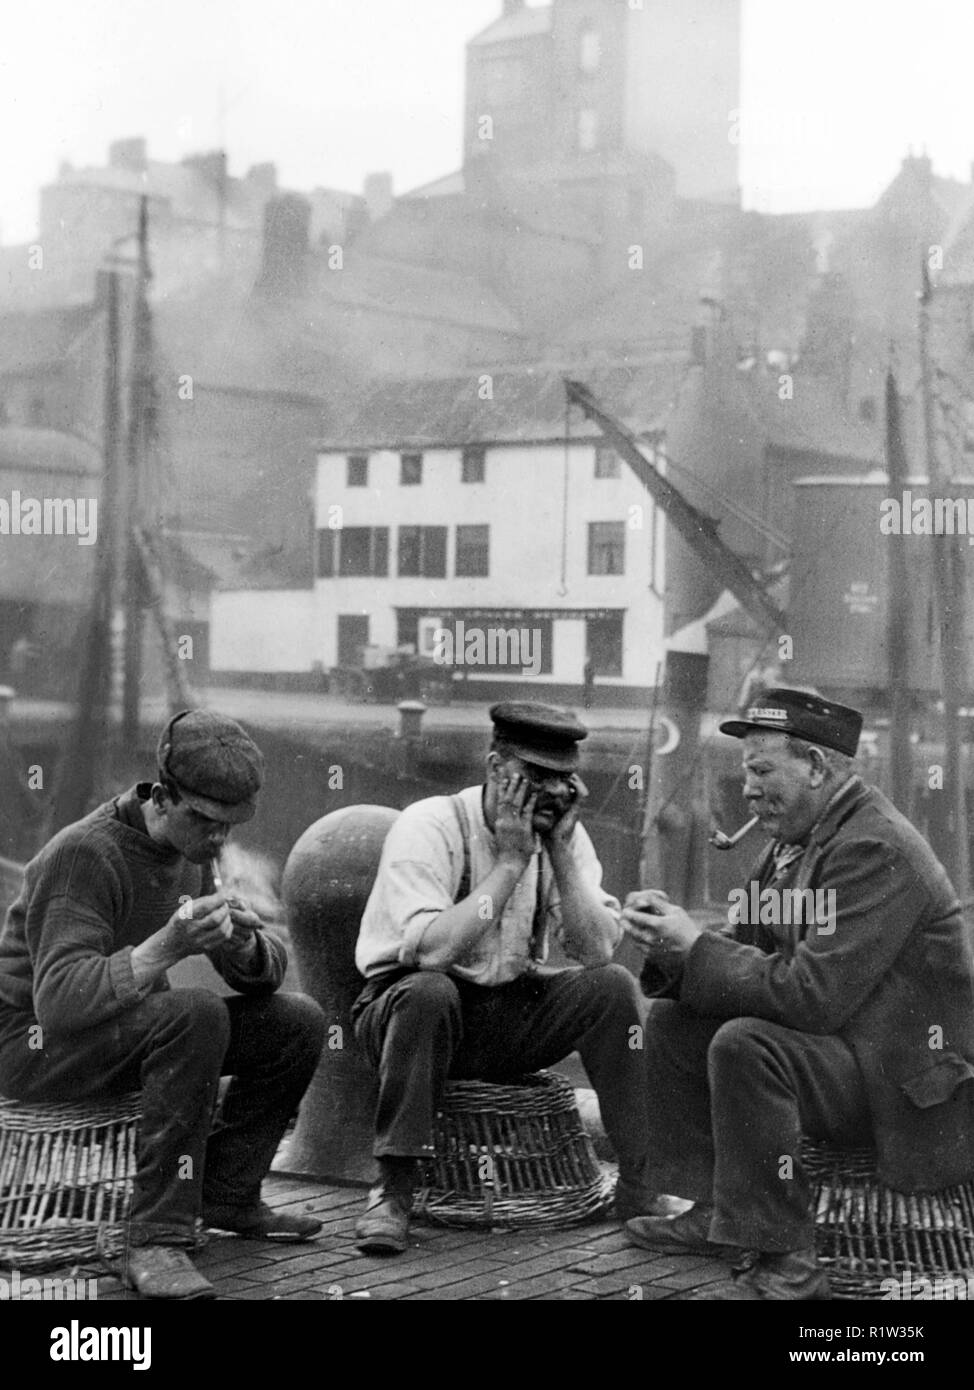 Fishermen, North Shields early 1900's - Stock Image